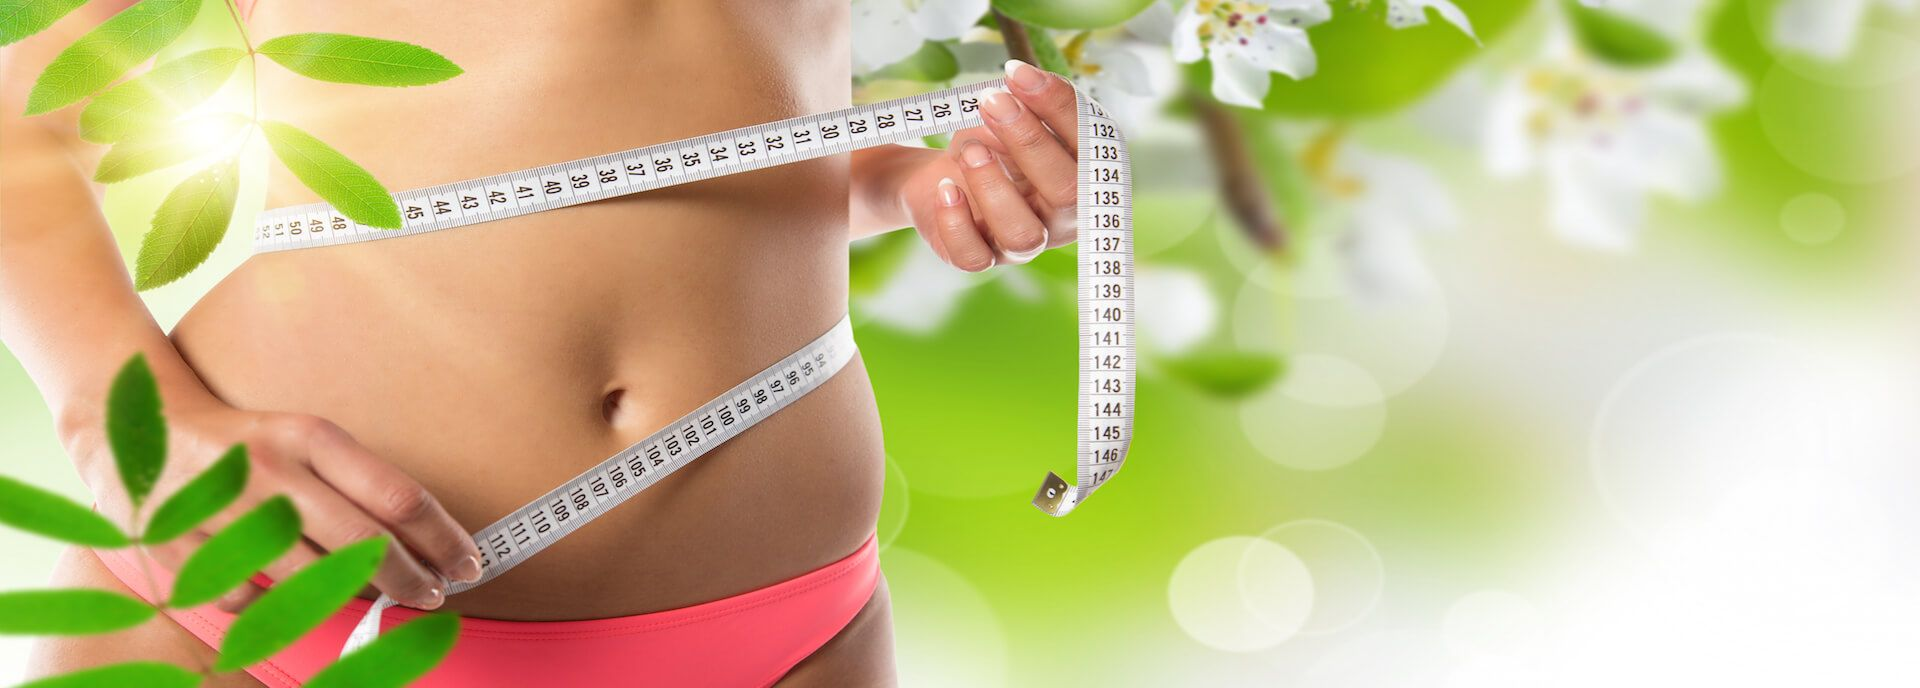 Naturopathic weight loss body sculpting cellulite tx to dissolve weight loss solutioingenieria Image collections